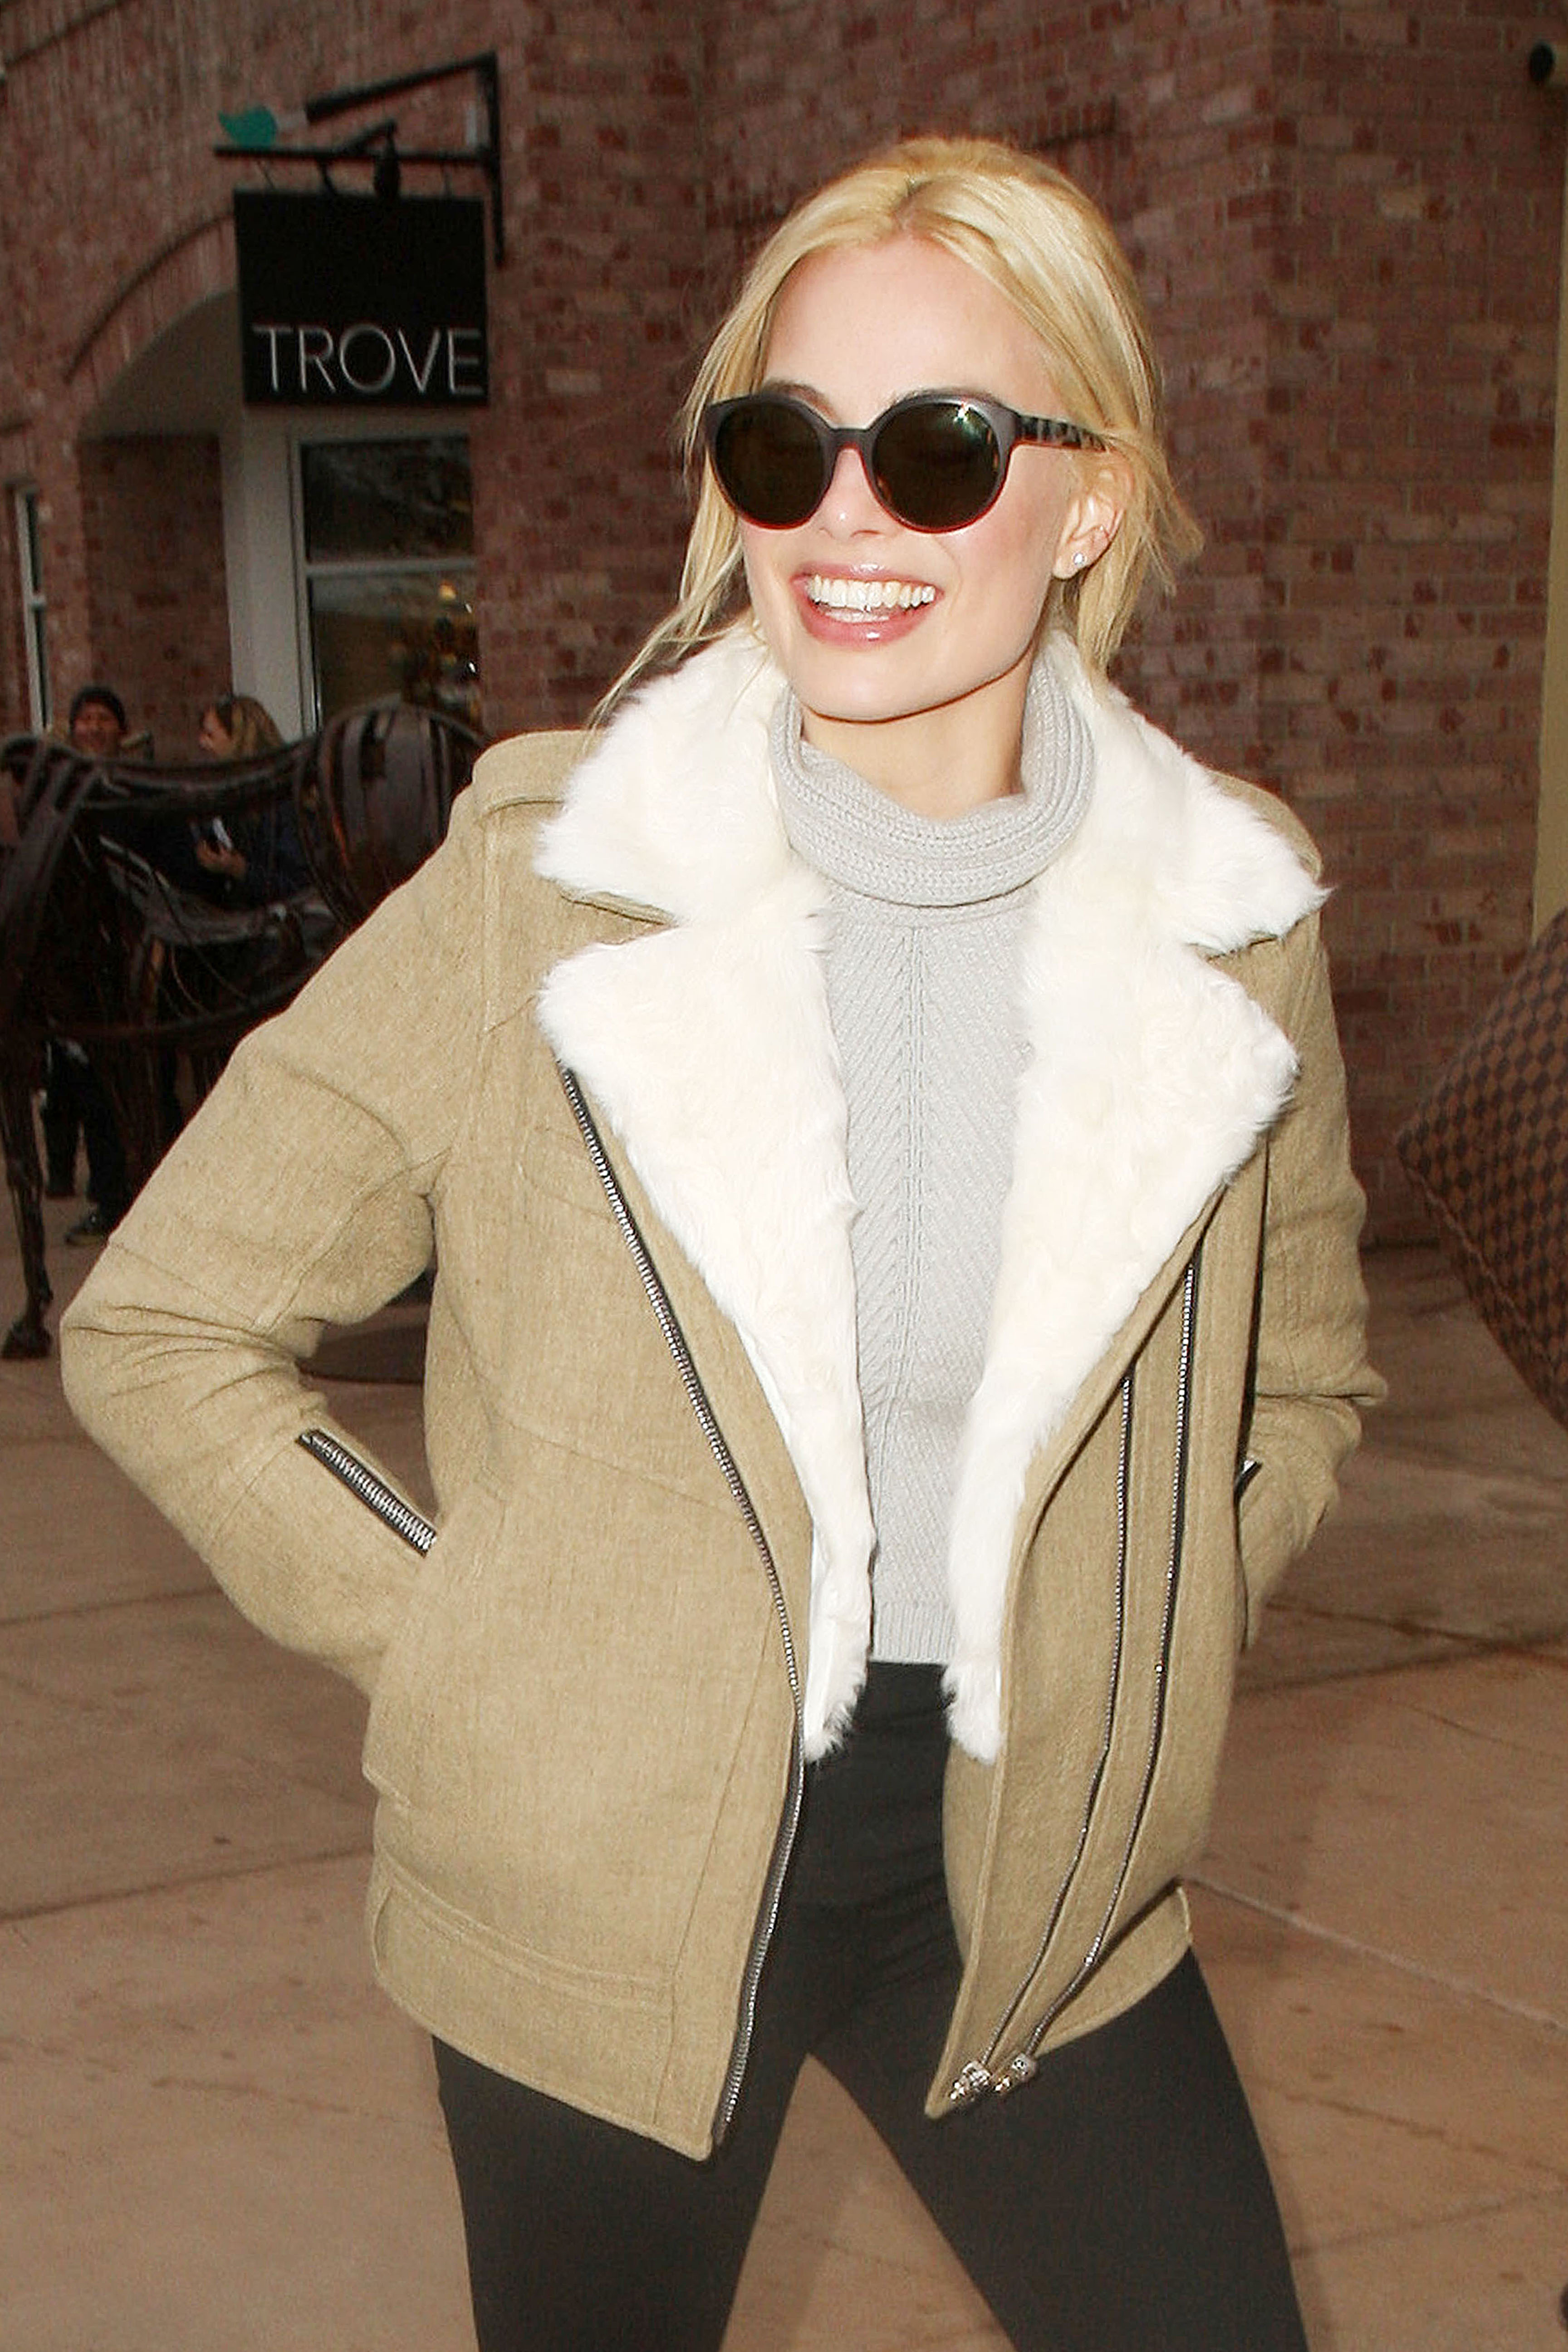 Margot Robbie is all smiles after recent reports of kissing Alexander Skarsgard **USA ONLY**